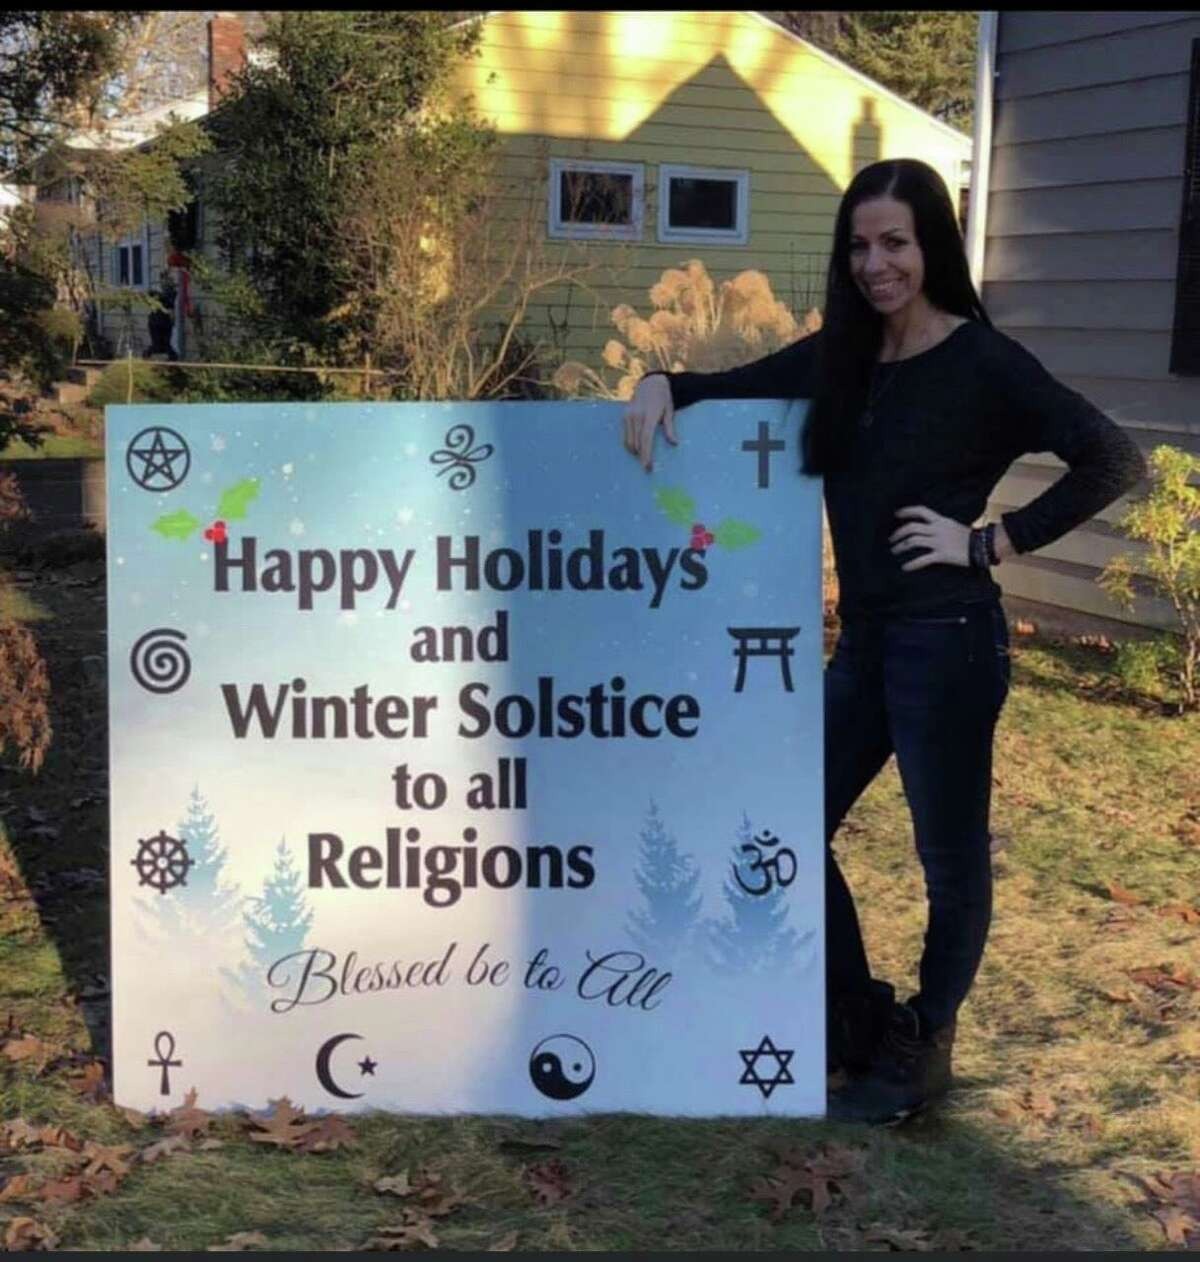 East Havener Michelle Piercey, who practices witchcraft, with the holiday sign she recently was approved to place on the East Haven Green. The sign will be unveiled on Dec. 1 at 1 p.m.